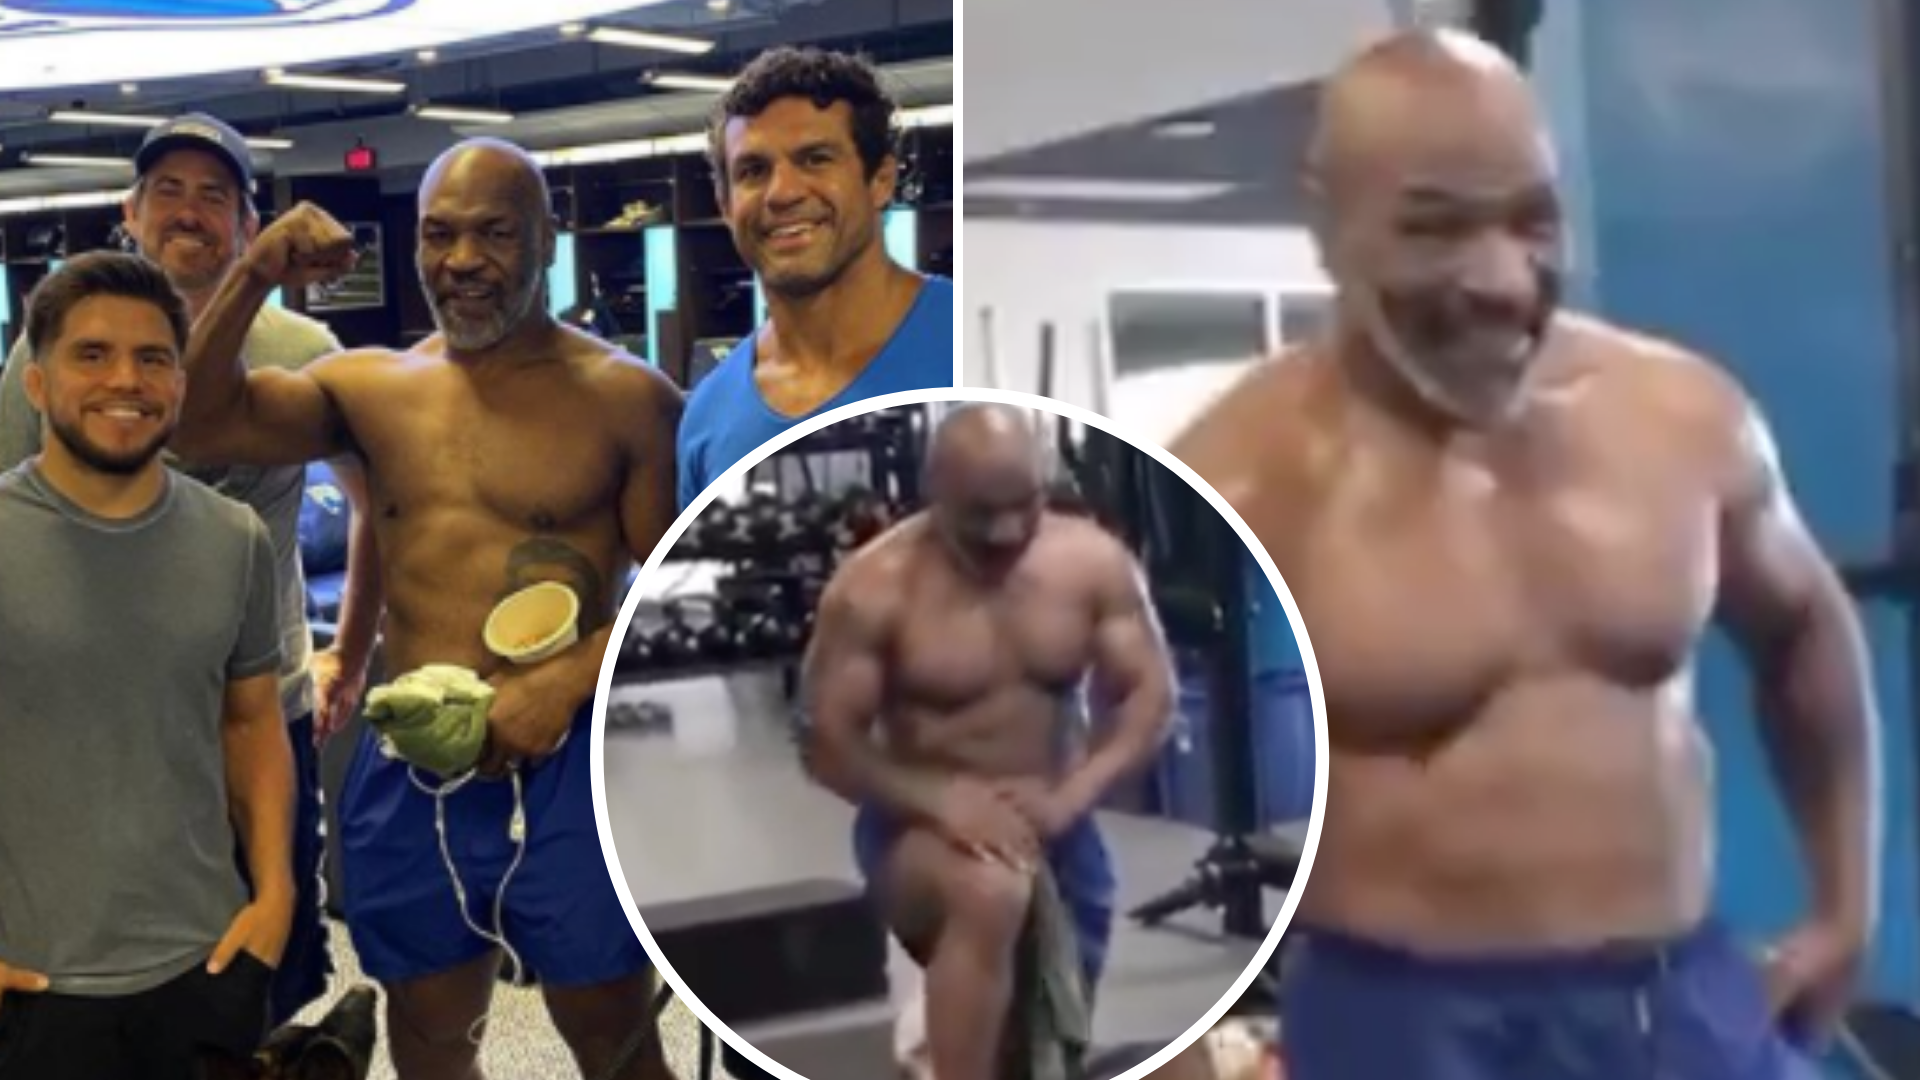 Mike Tyson Shows Off Shredded Physique During Training Session With Ufc Legend Vitor Belfort Sportbible